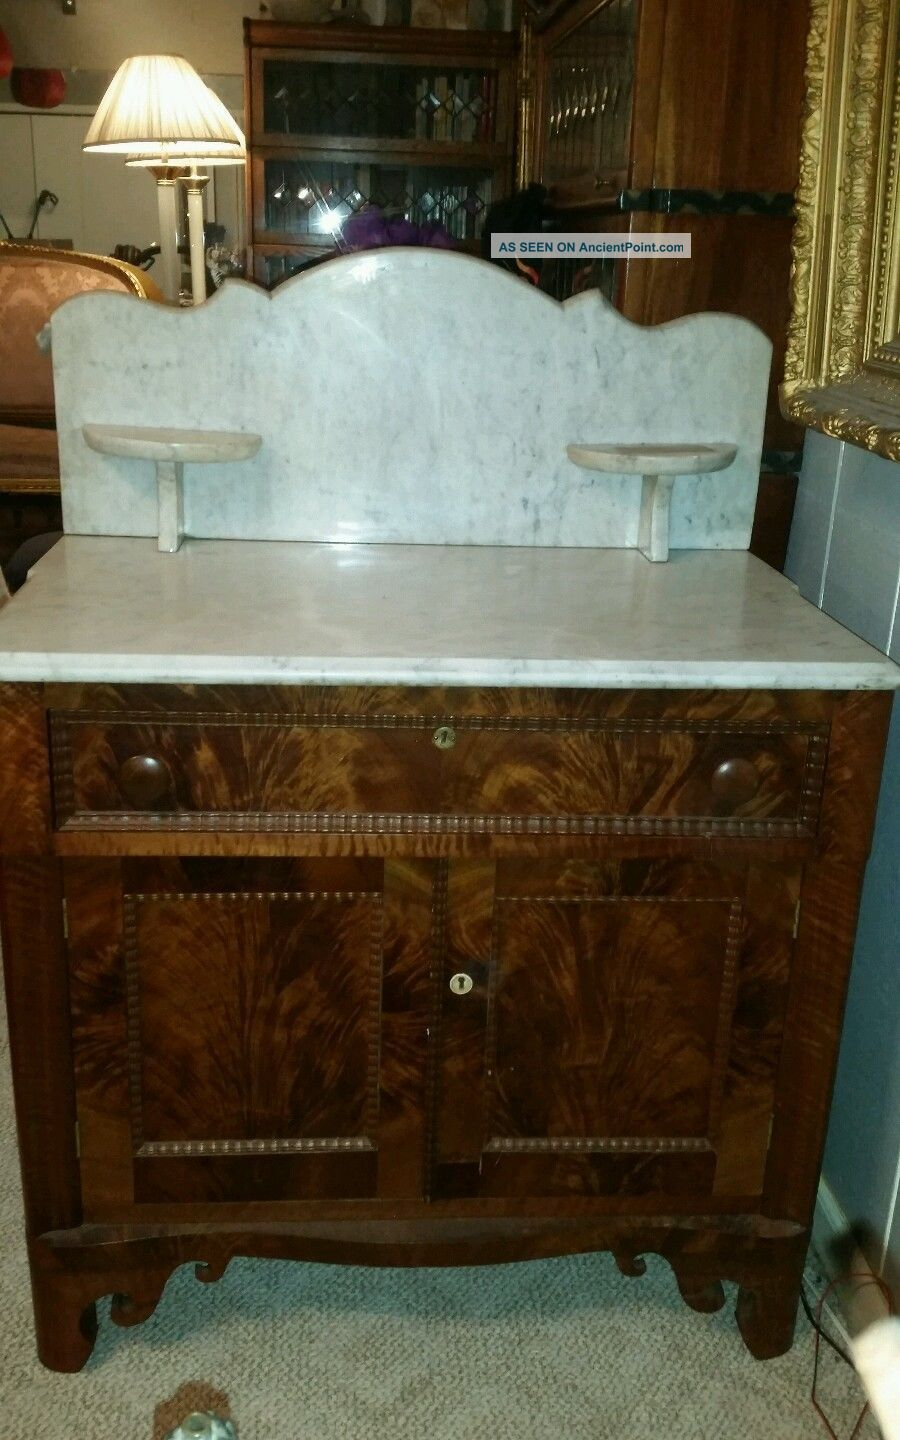 Antique Victorian Marble Top Wash Stand With Fabulous Wood Base Stunning 1800-1899 photo